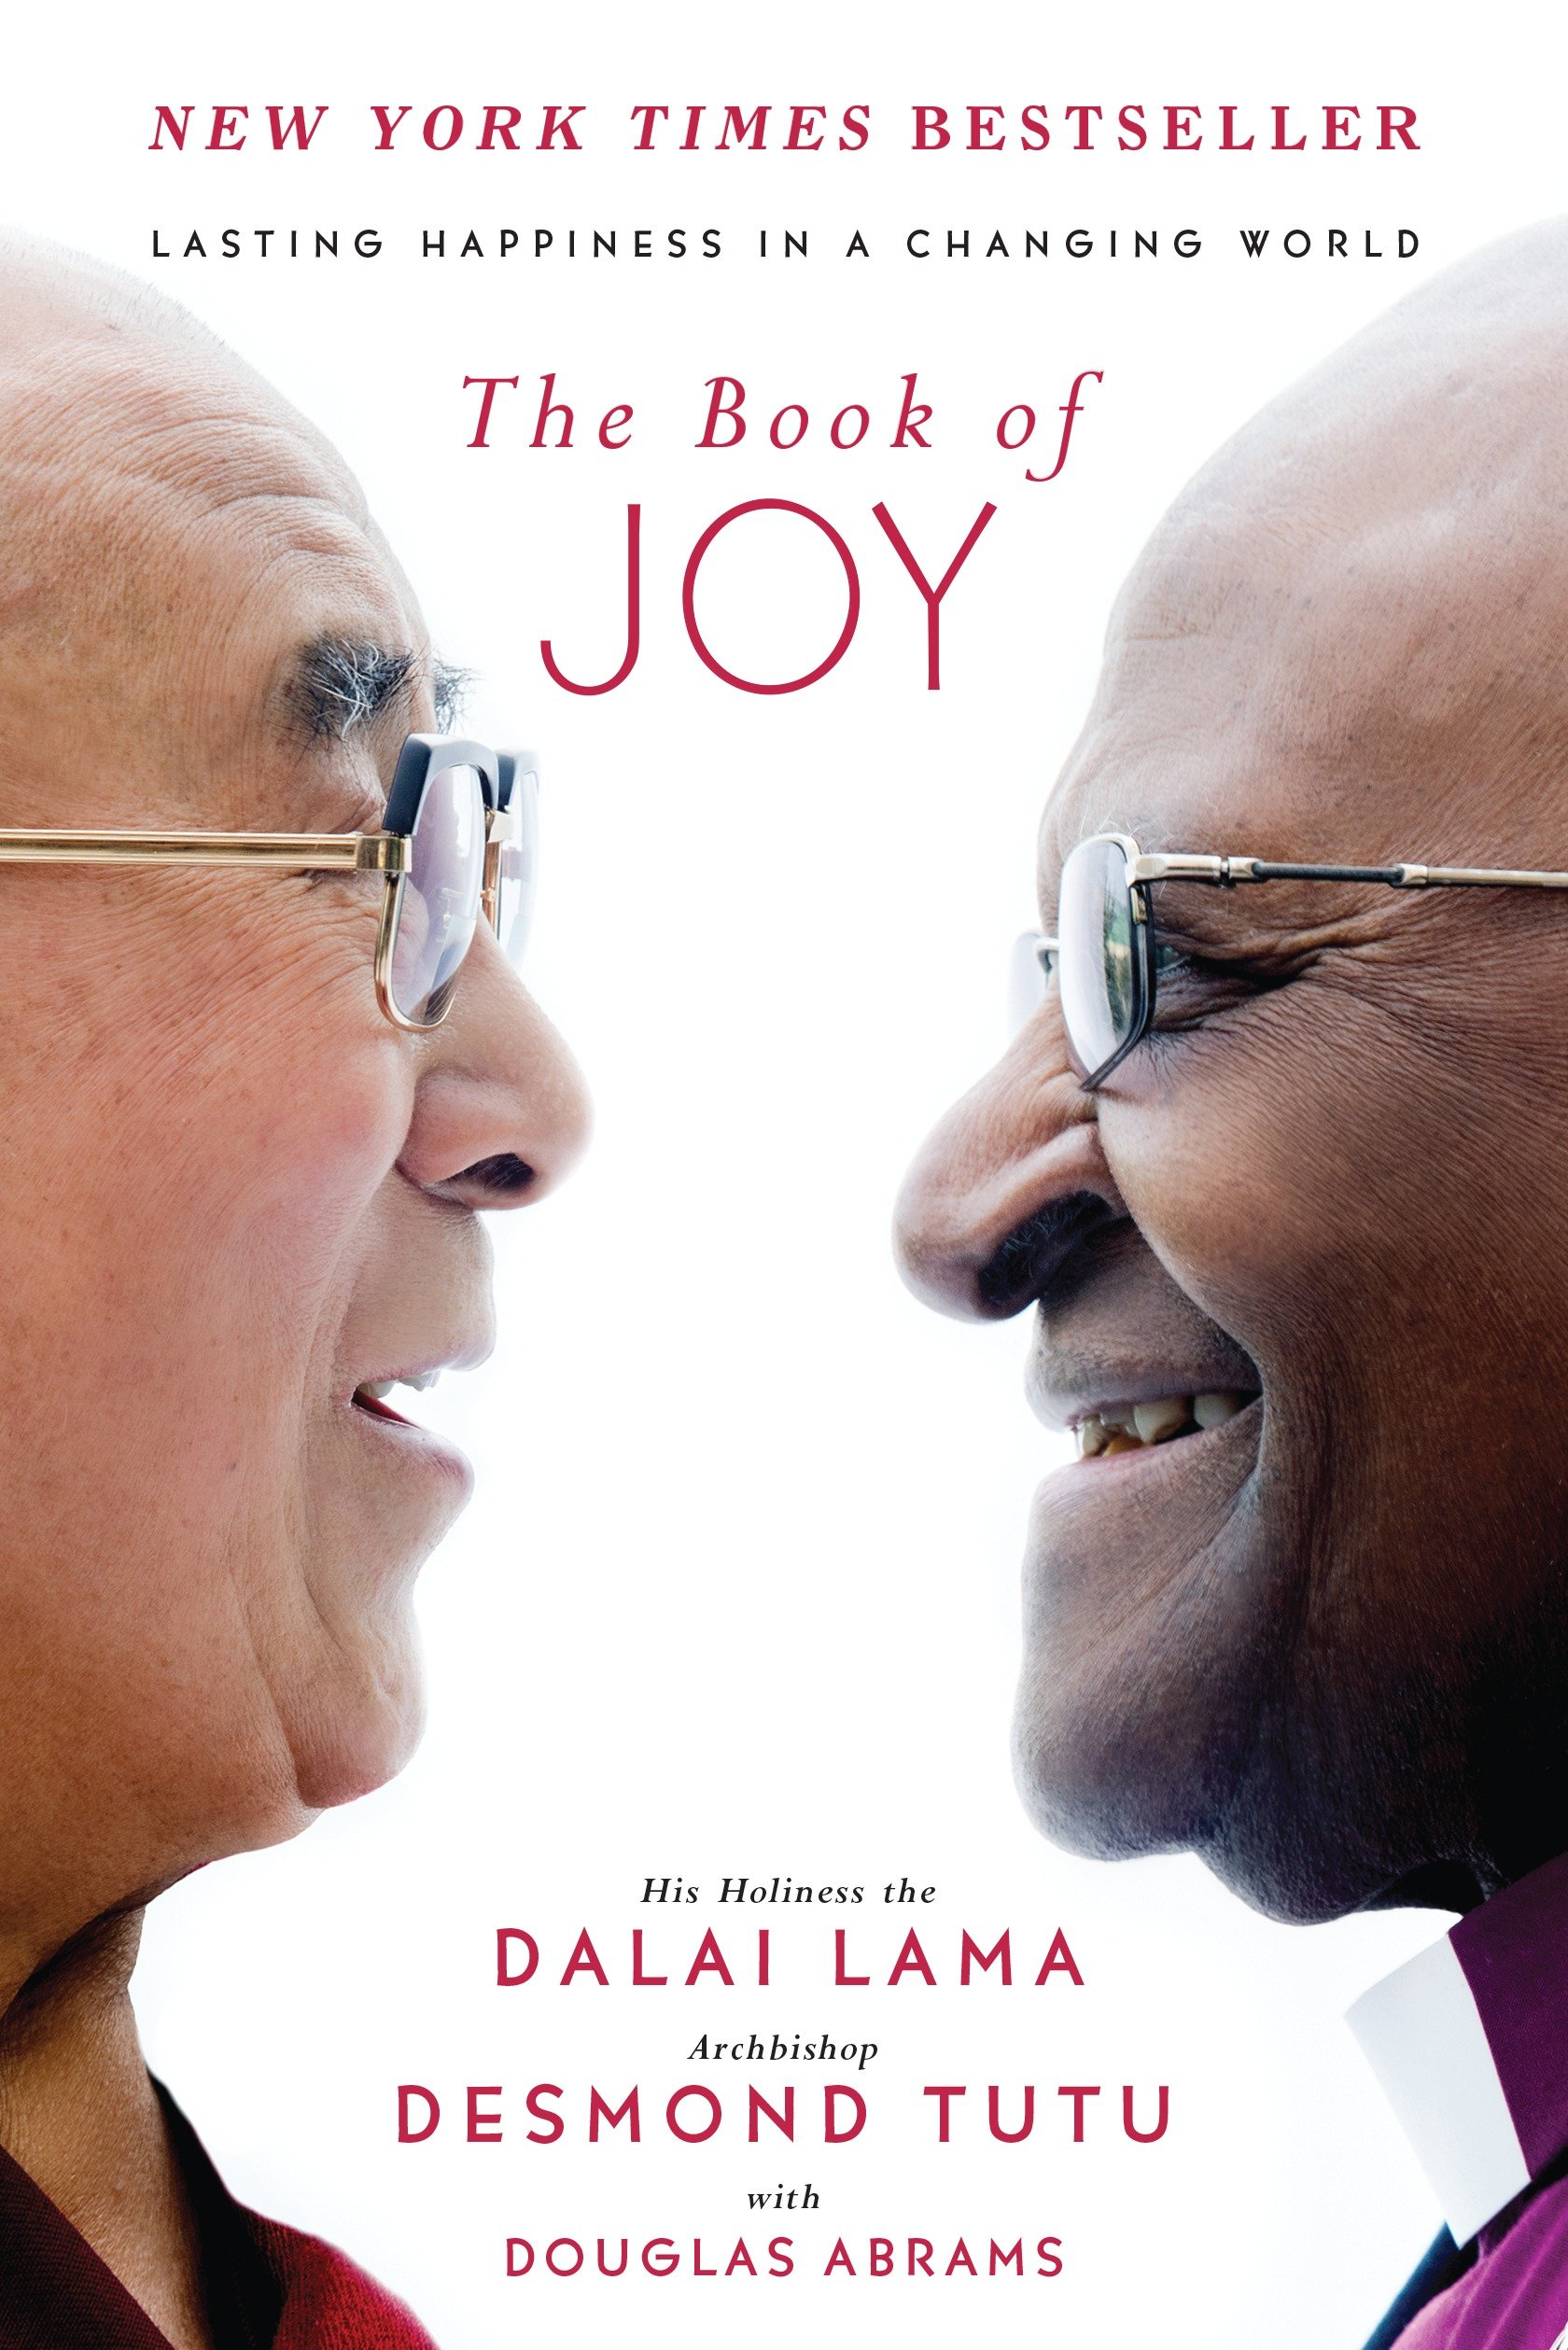 The book of joy : lasting happiness in a changing world